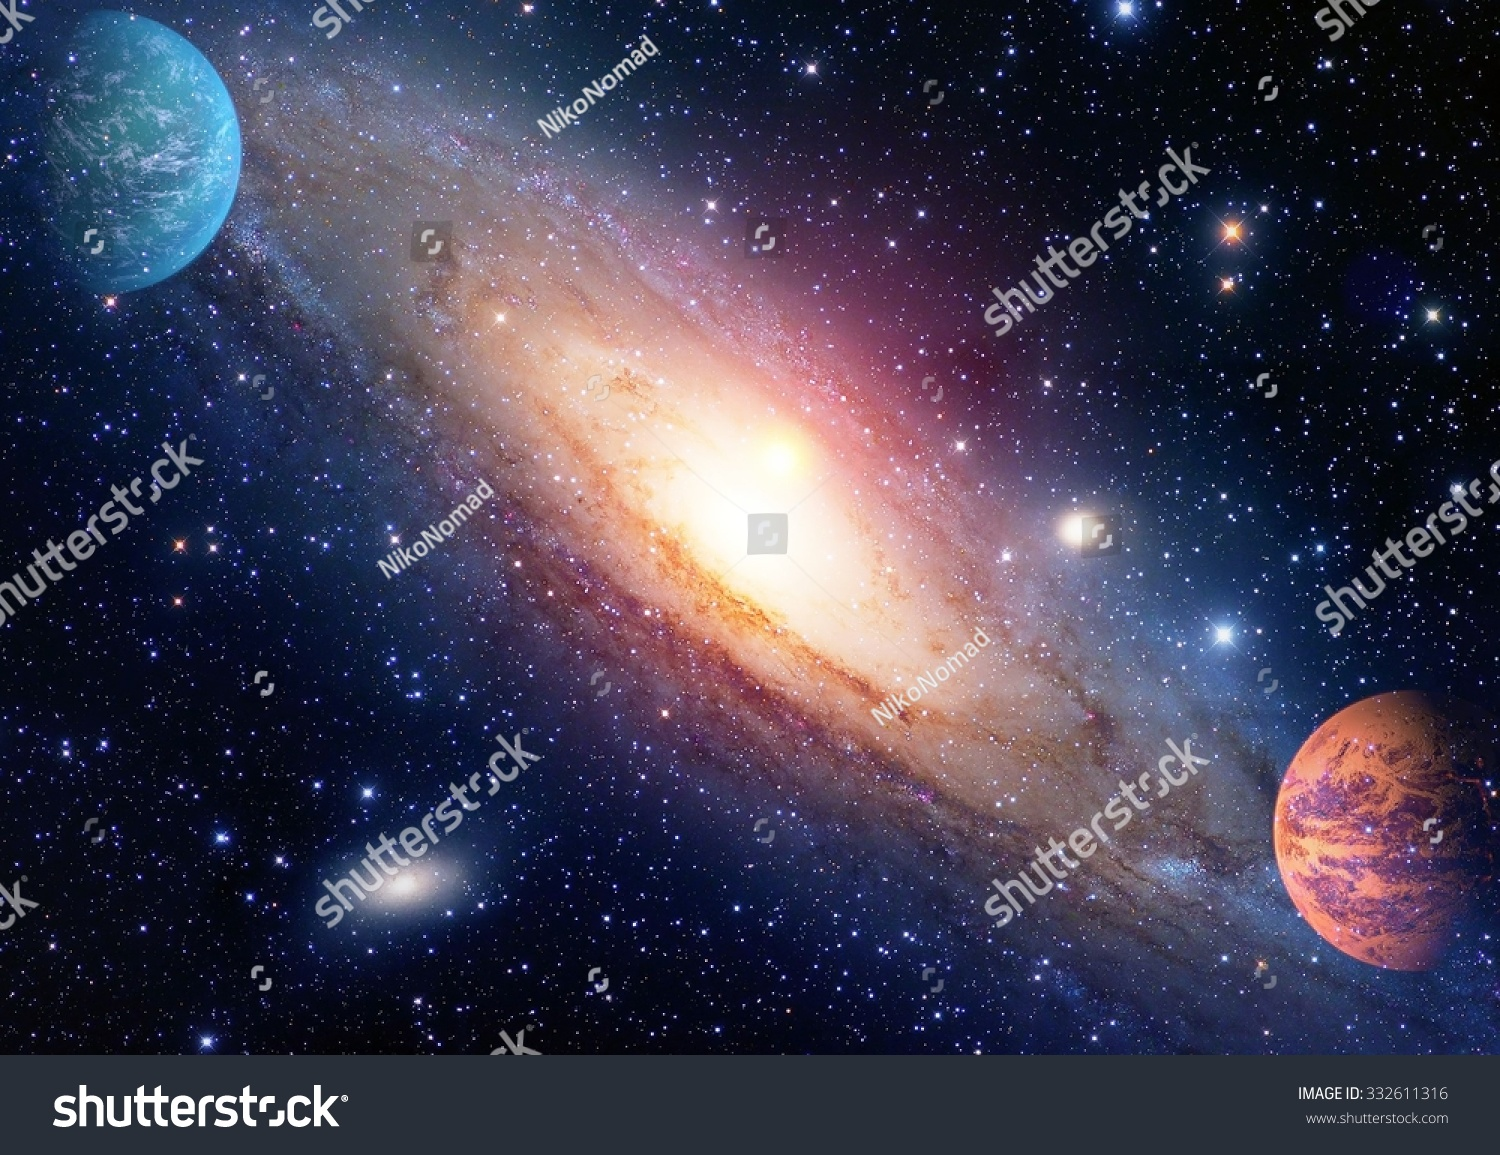 Astrology Astronomy Outer Space Big Bang Stock Photo